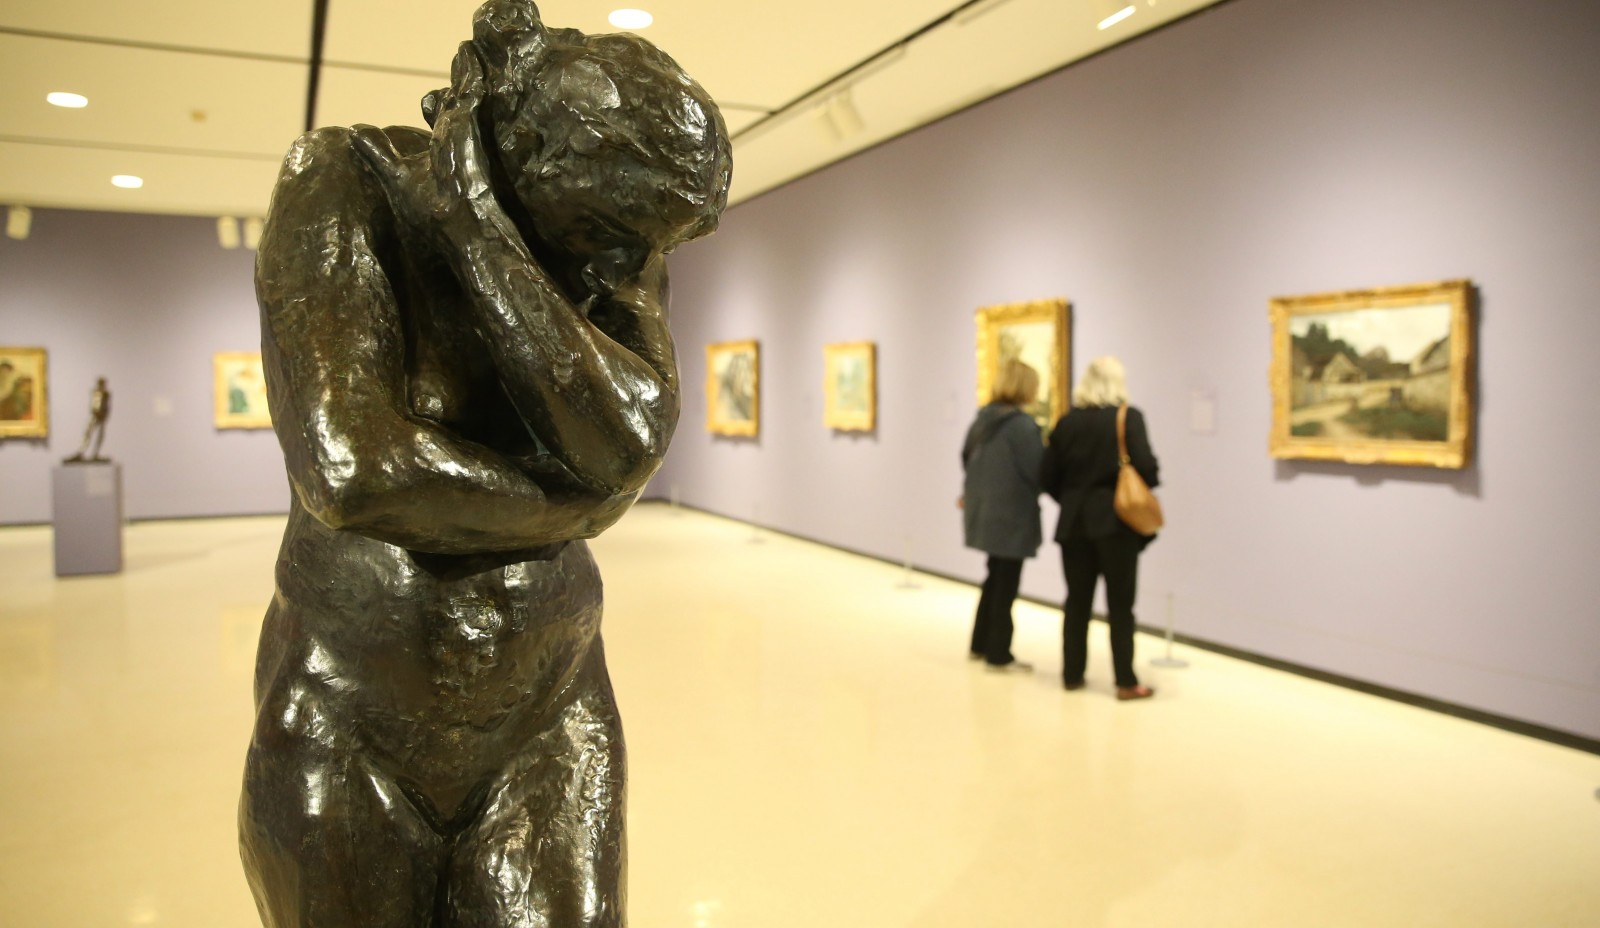 100 Things – Visit the Albright-Knox Art Gallery